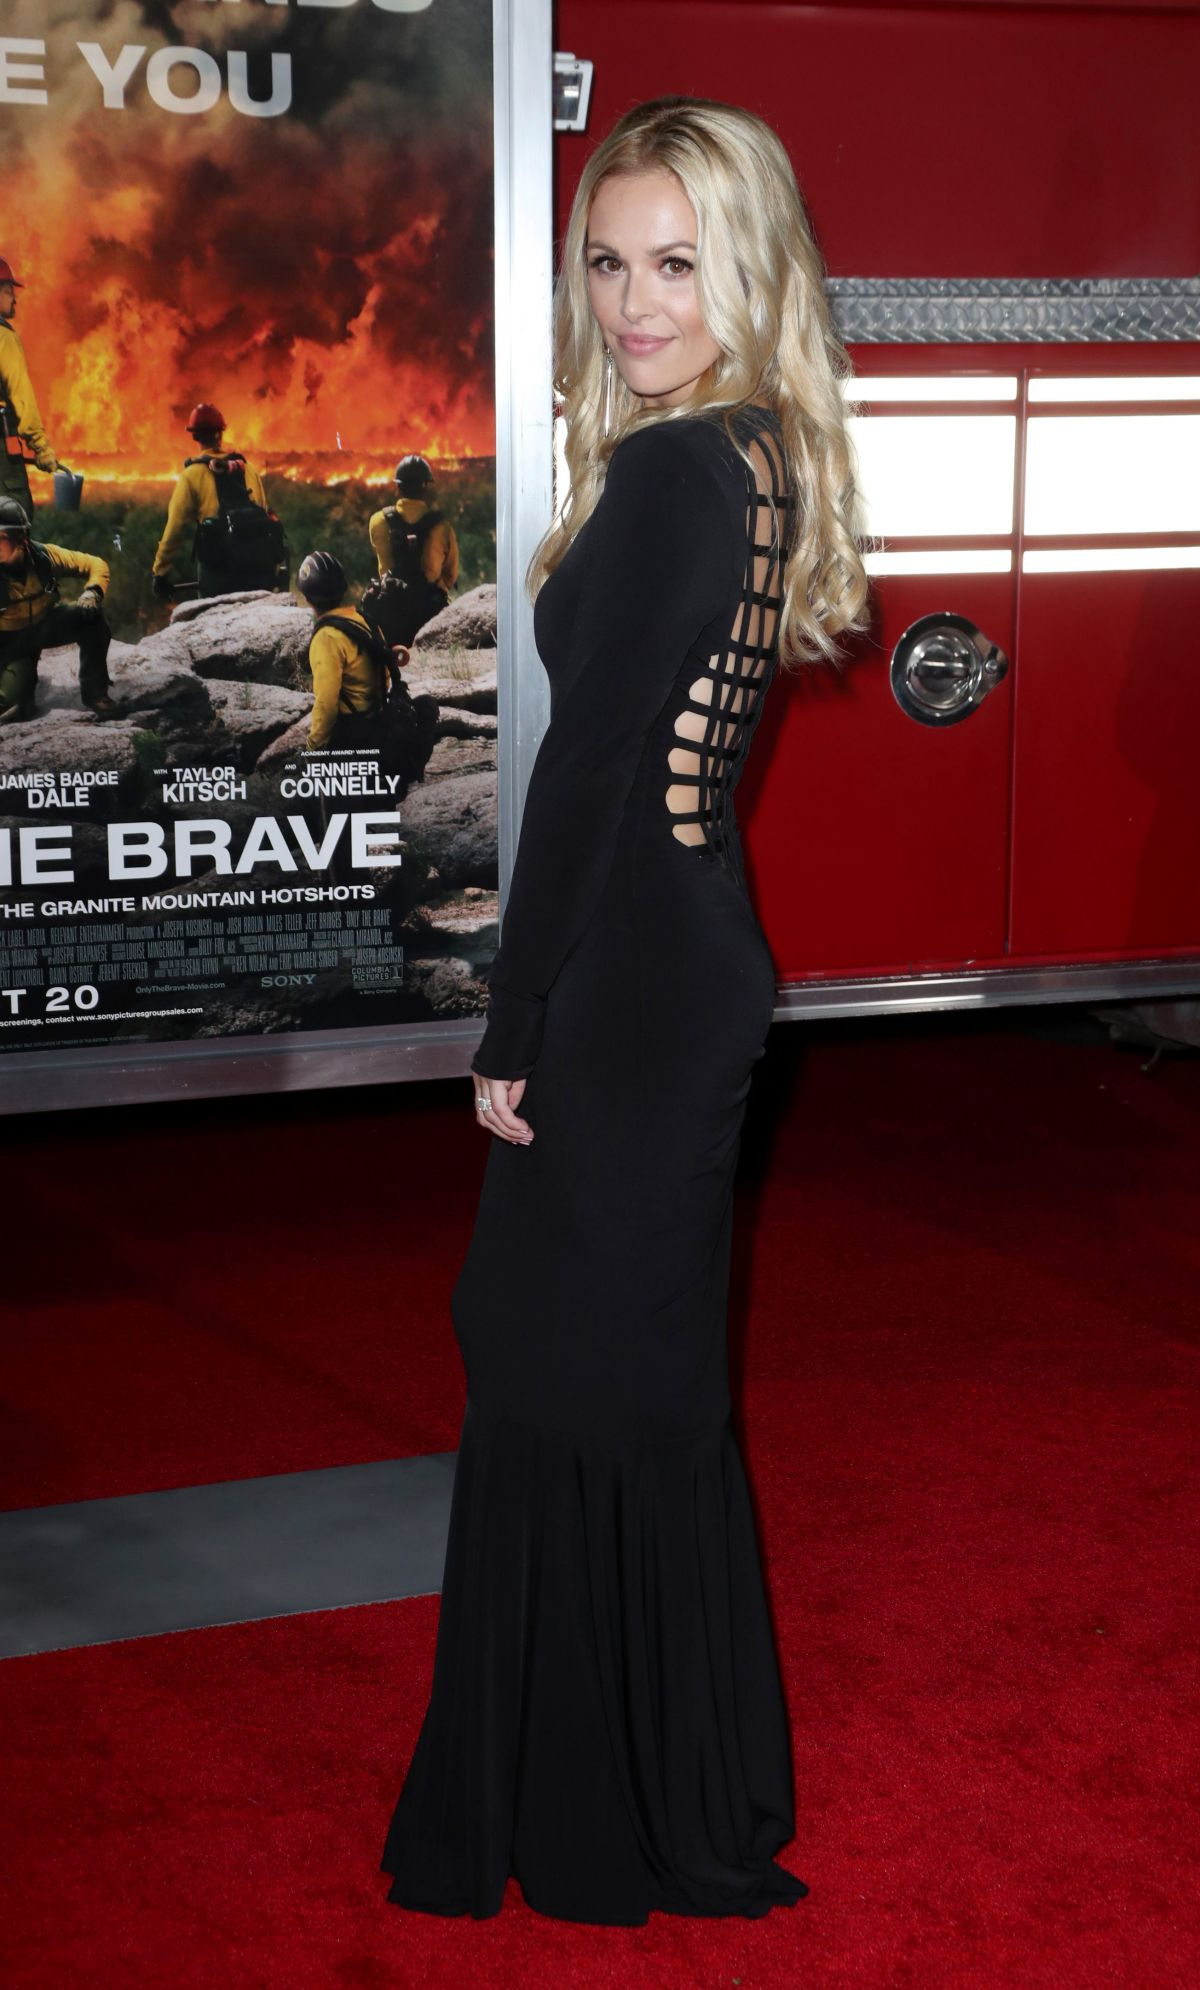 Natalie Hall At 'Only The Brave' film premiere, Los Angeles   natalie-hall-at-only-the-brave-film-premiere-los-angeles-26